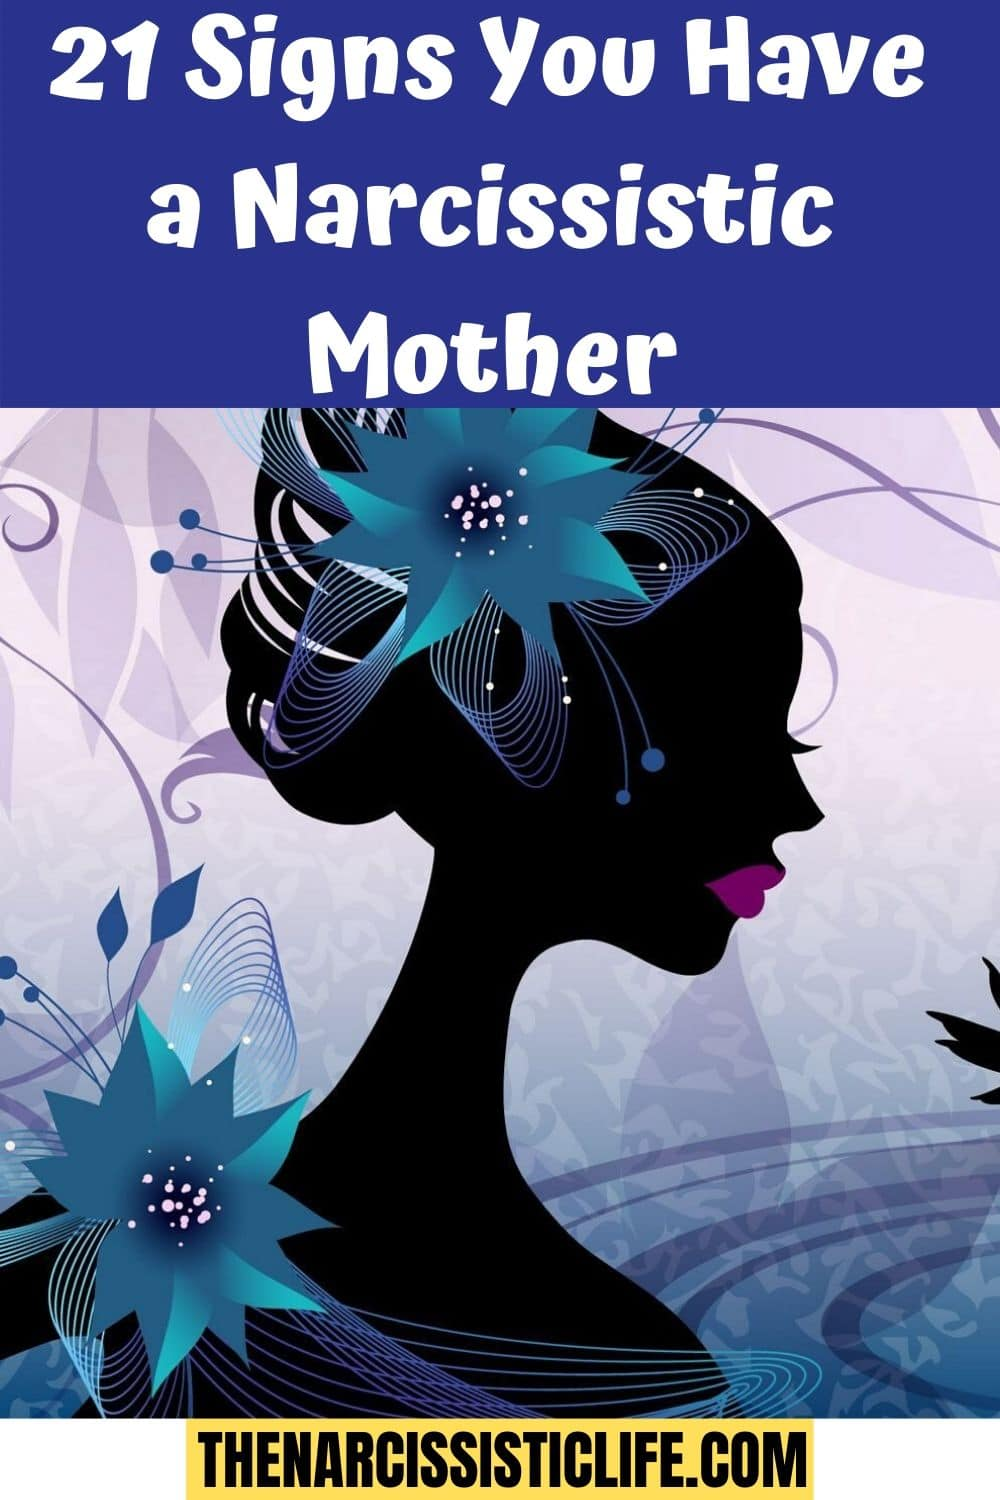 21 Signs of a Narcissistic Mother | What are the Signs of a Narcissistic Mother?